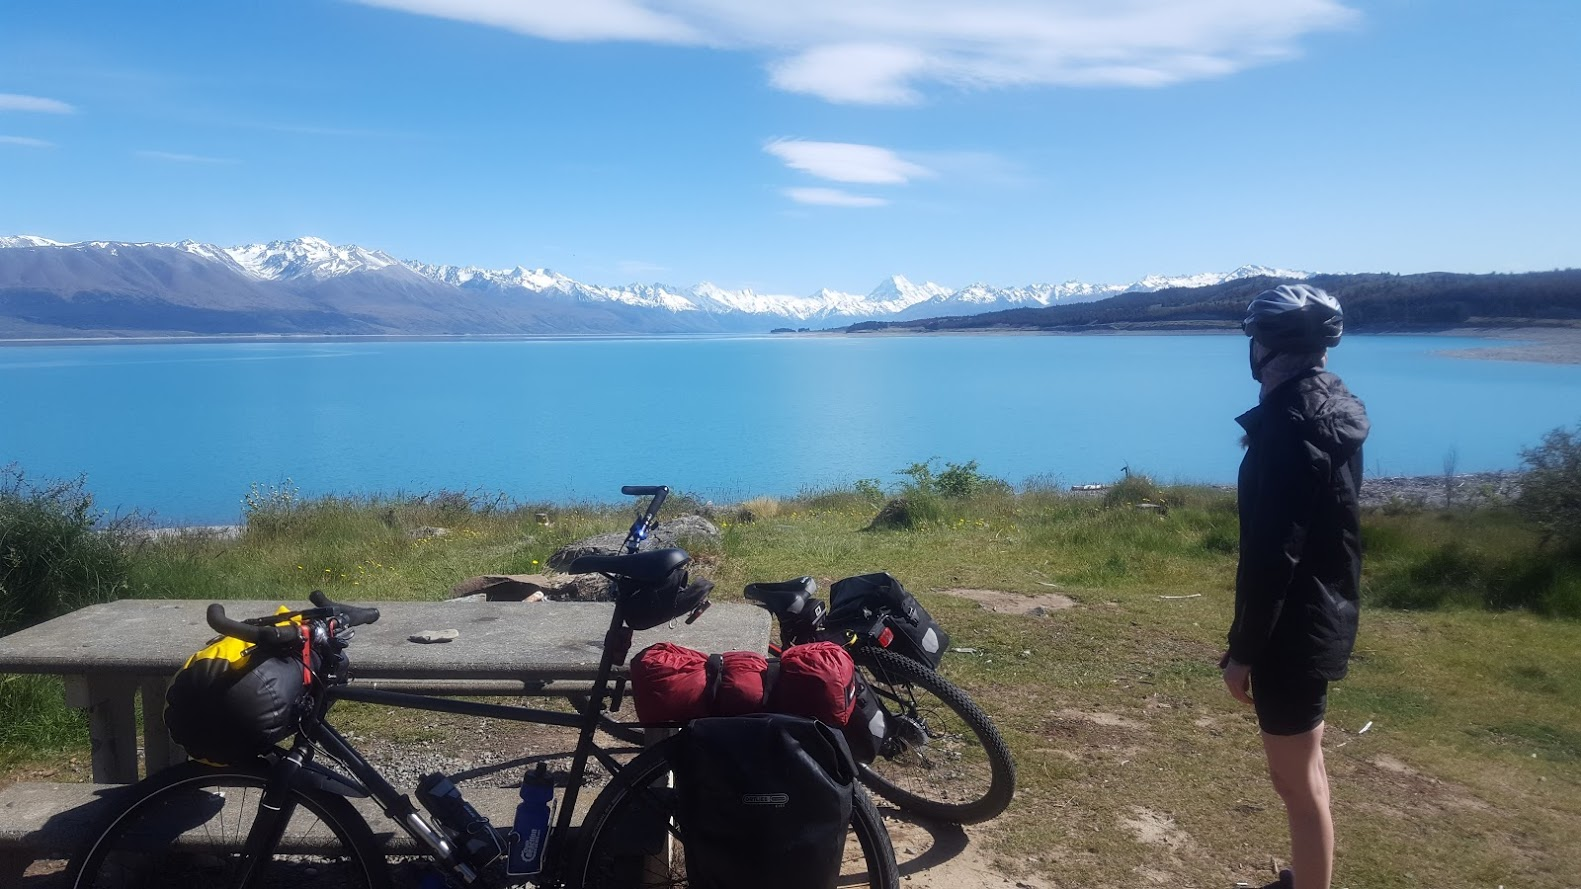 NZs Alps 2 Ocean Cycle Trail – Sweet As